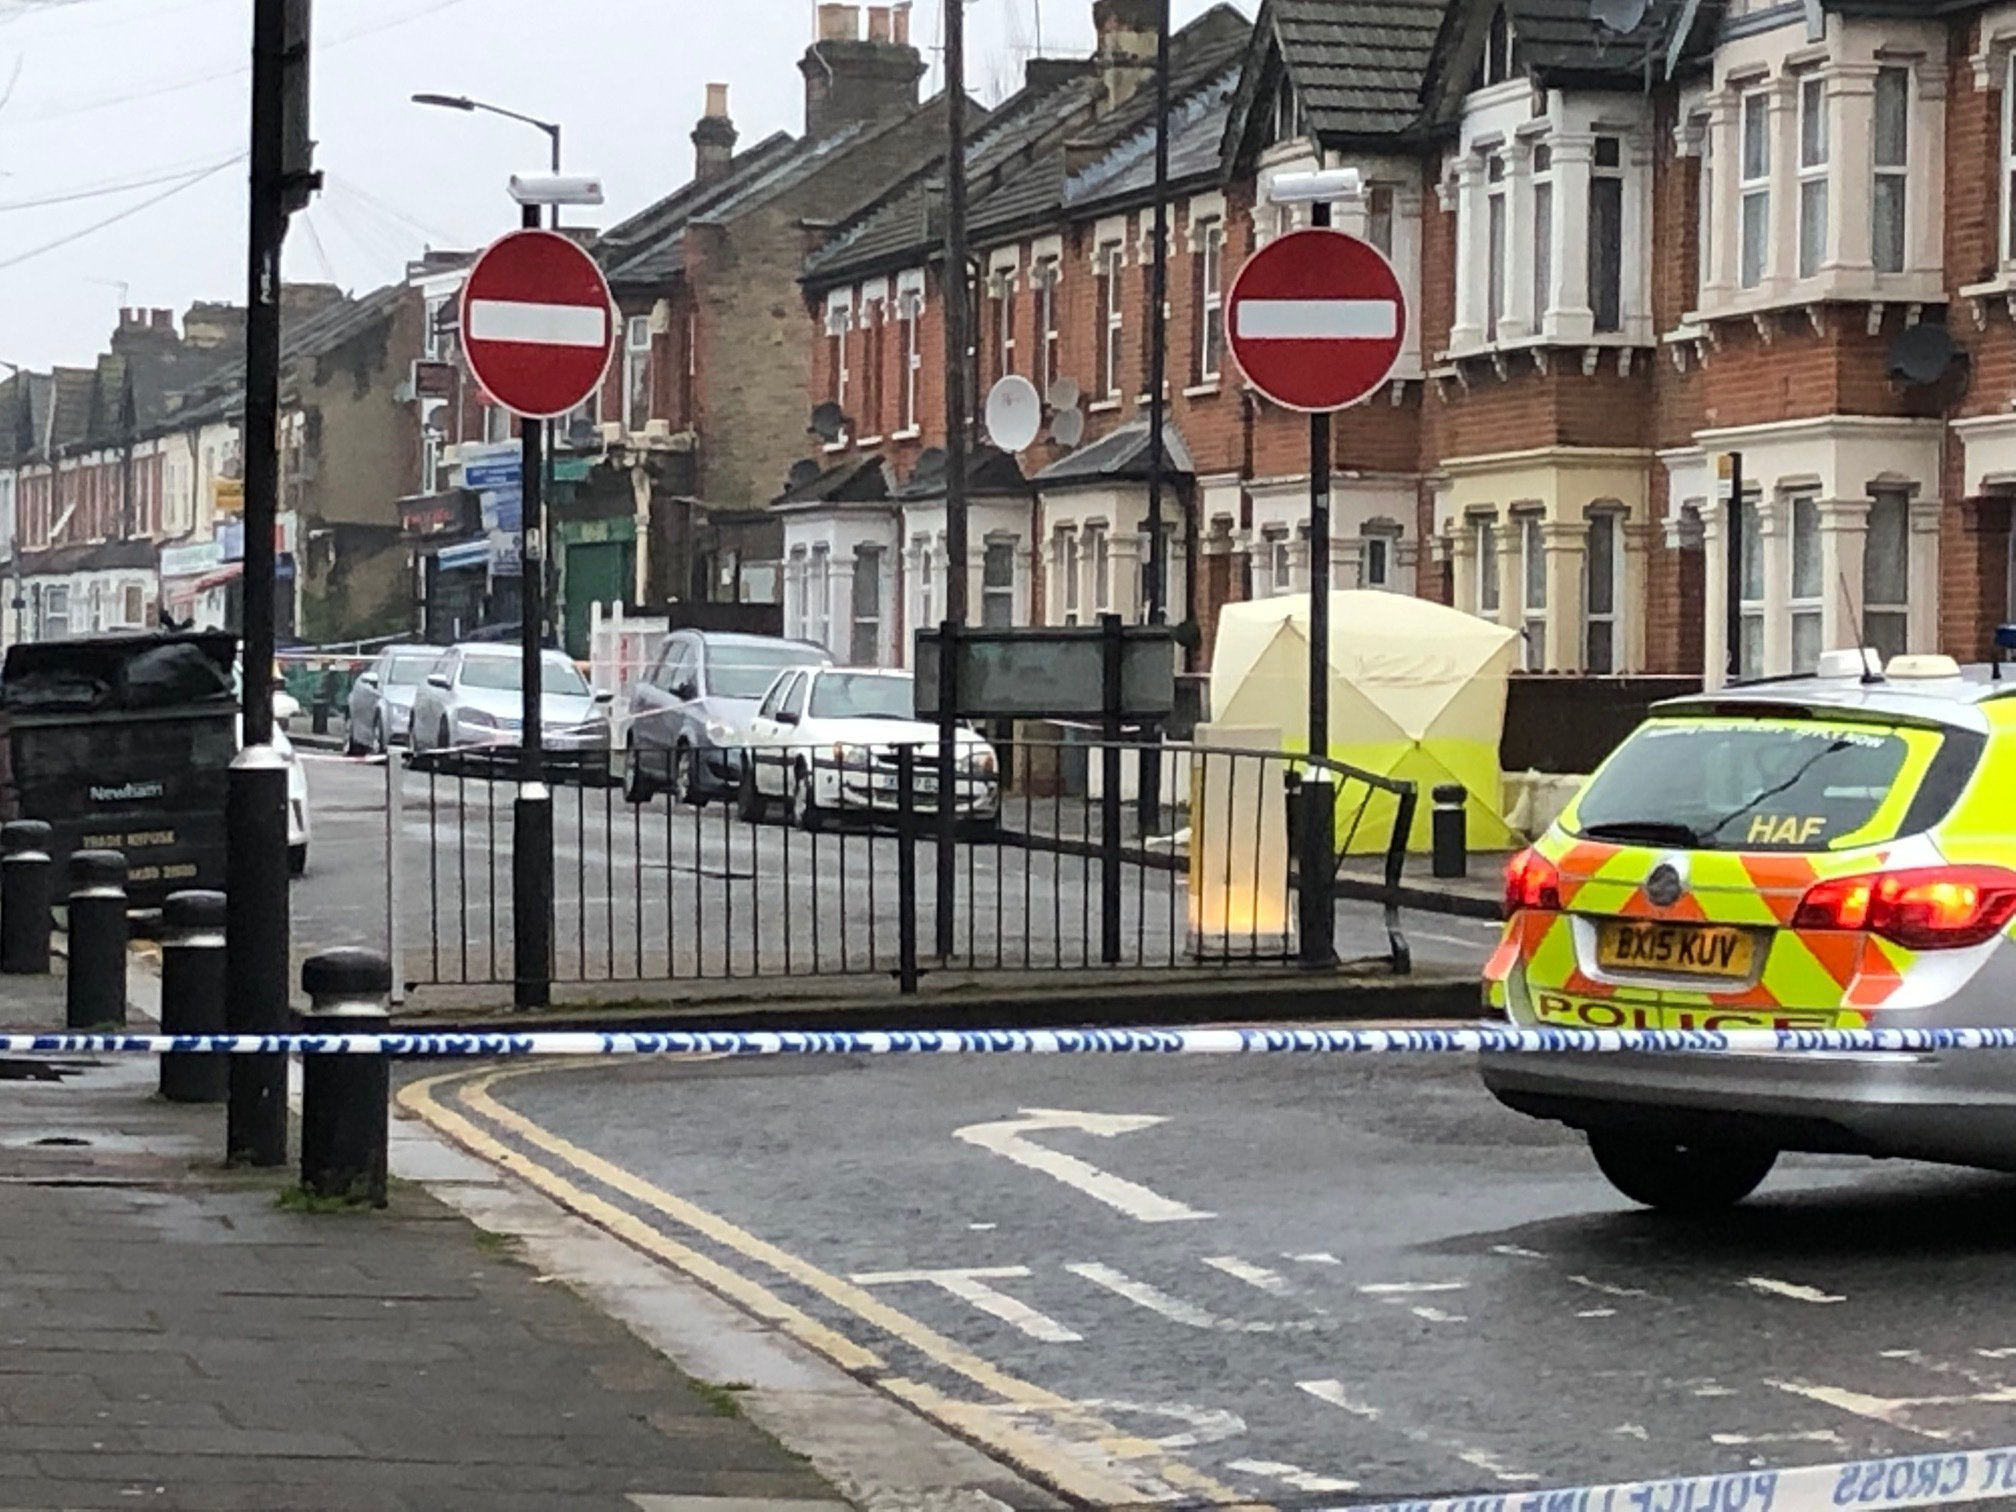 Police at the scene where a man in his 20s died of gunshot and stab wounds in east London on Monday night. PRESS ASSOCIATION Photo. Picture date: Tuesday April 9, 2019. The London Ambulance Service alerted police that a man had been attacked in Church Road, Manor Park, shortly before 9.30pm. He died at the scene. See PA story POLICE Newham. Photo credit should read: Tess De La Mare/PA Wire